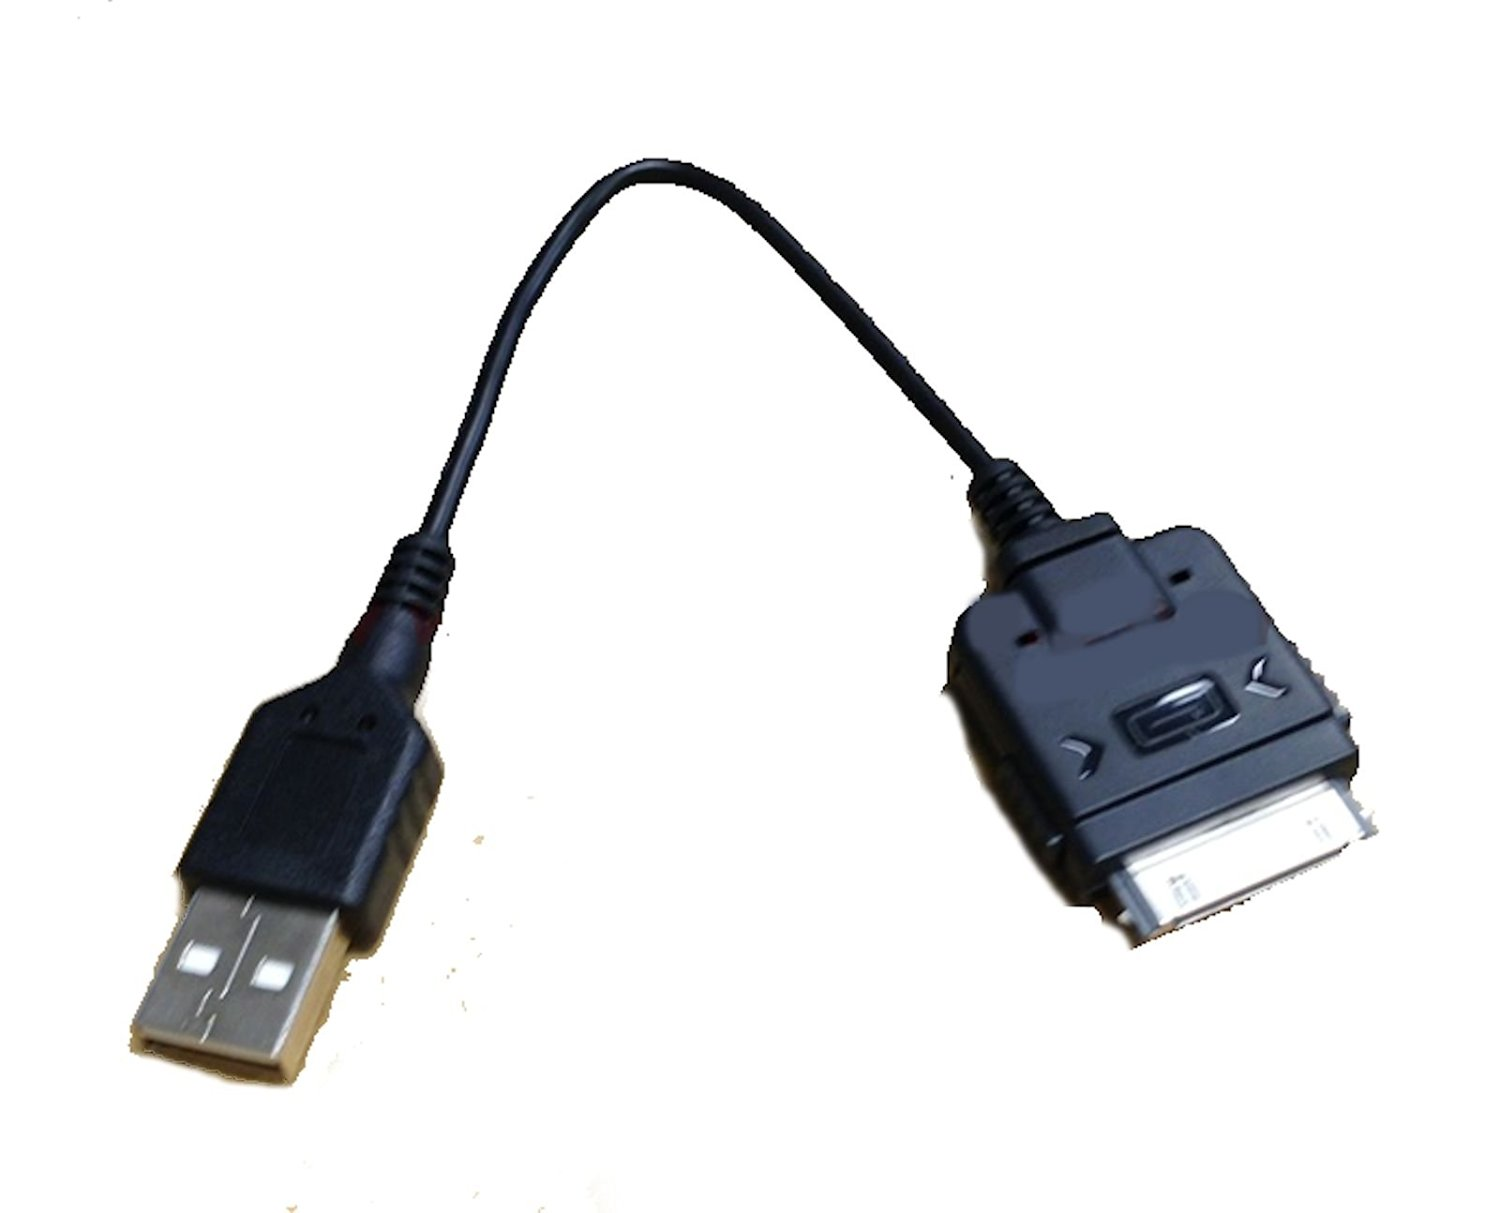 CDE-W203R HQRP Aux KCE-237B Cable for Alpine CDE-W203Ri